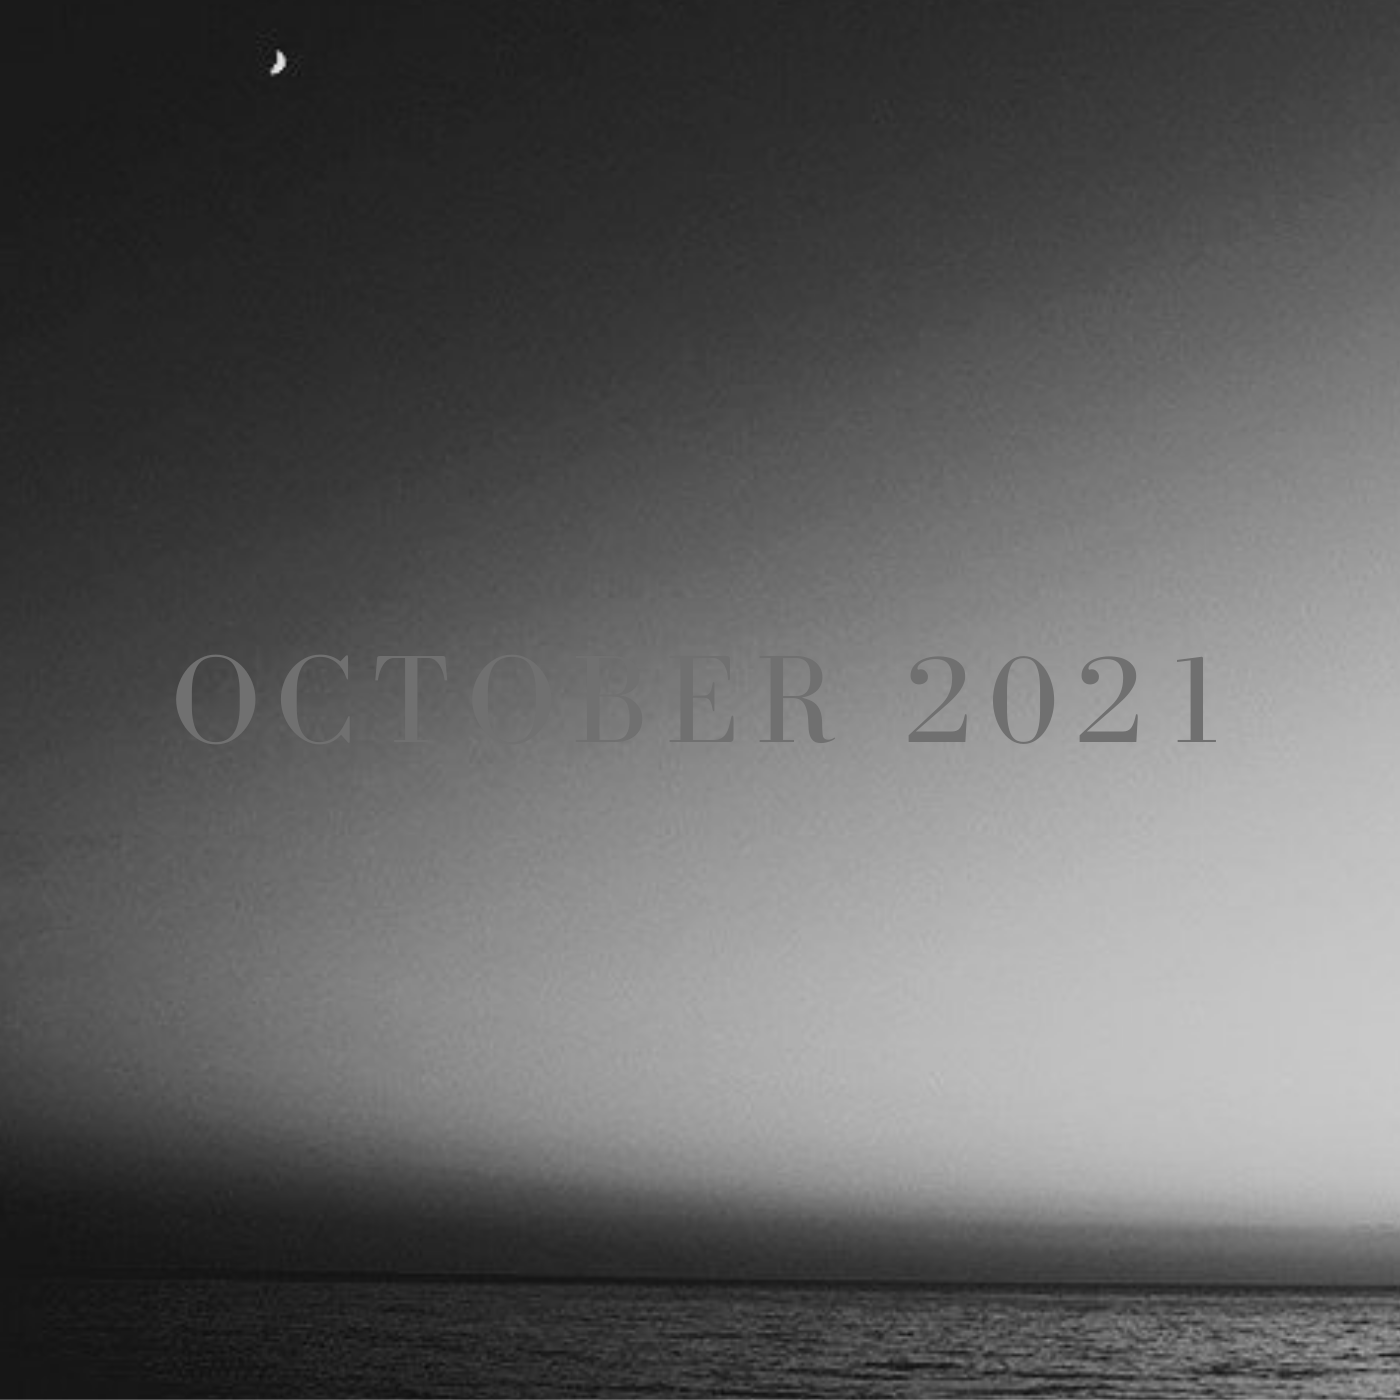 a square black and white image of a sliver of dark ocean at the bottom and sky above with a small crescent moon at the top left, it says october 2021 in an all caps serif font at the center